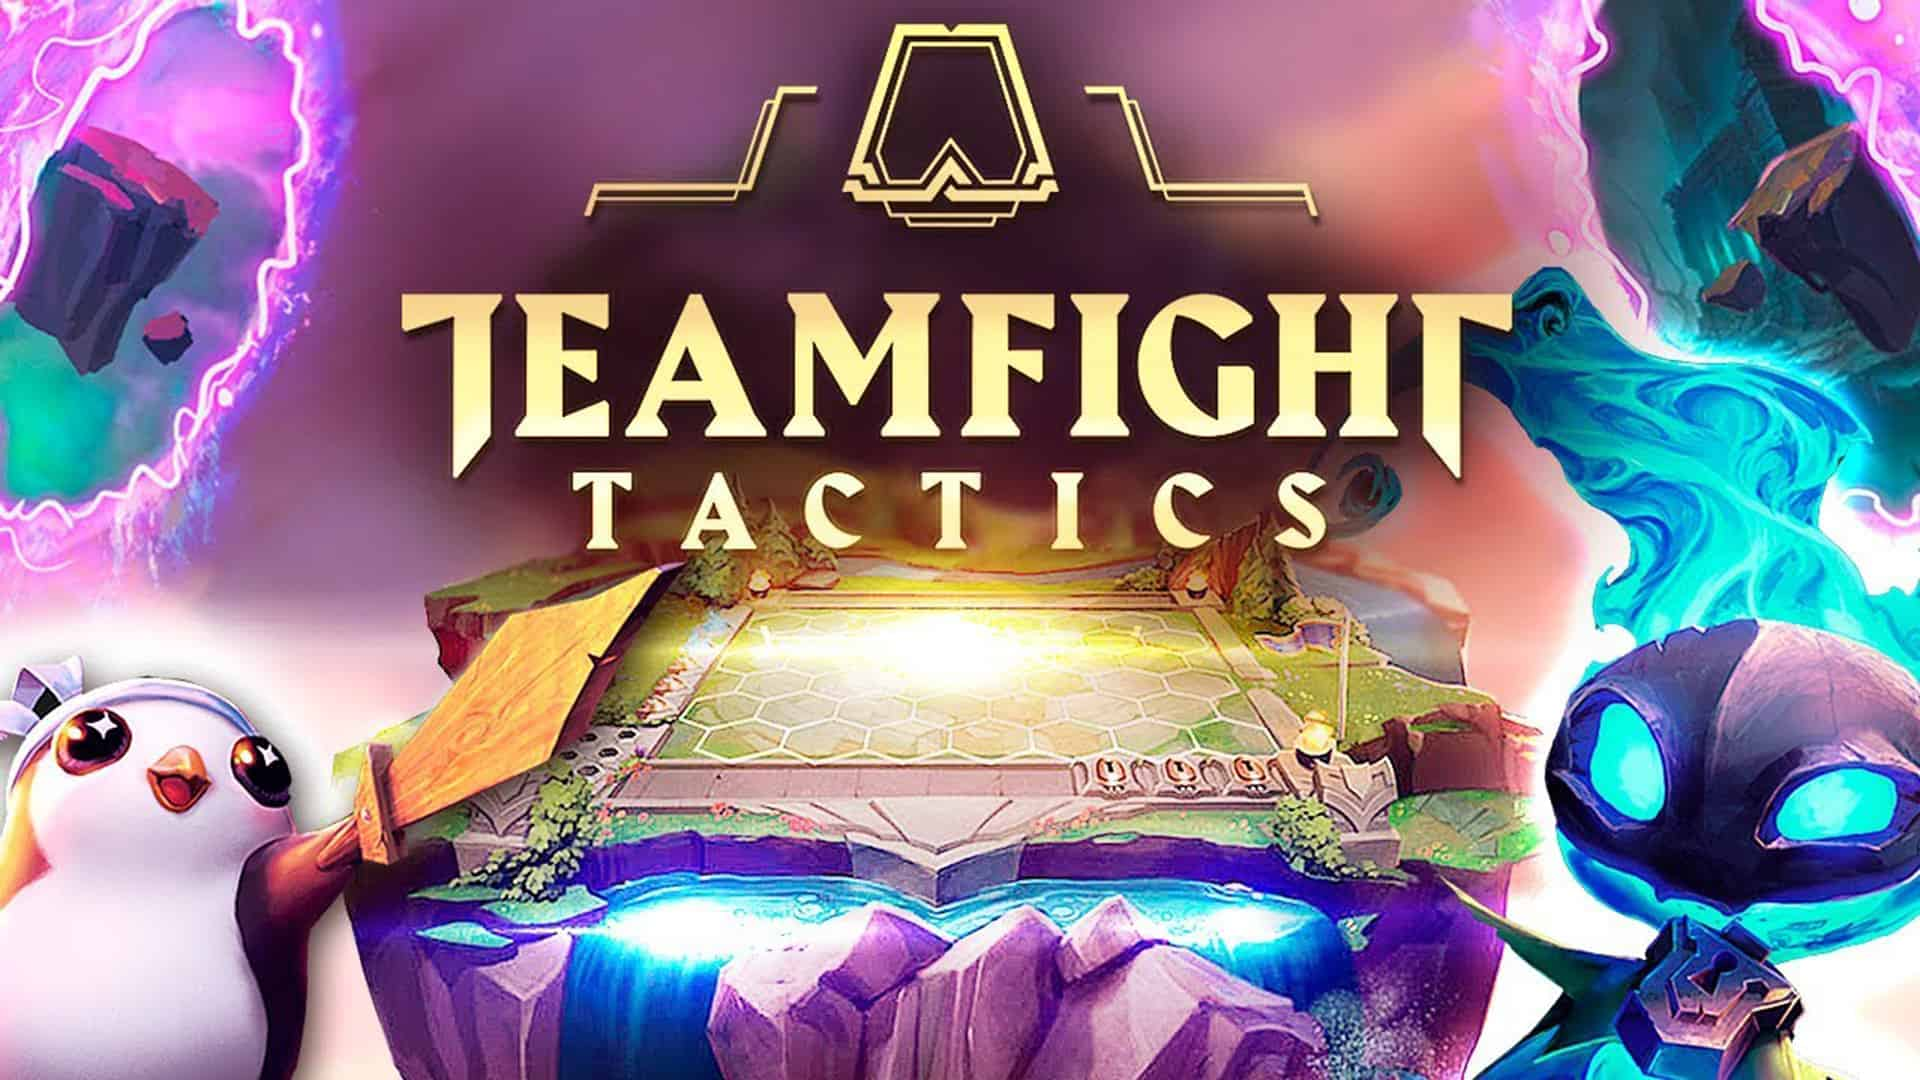 League of Legends Launches First Key Patch For Teamfight Tactics